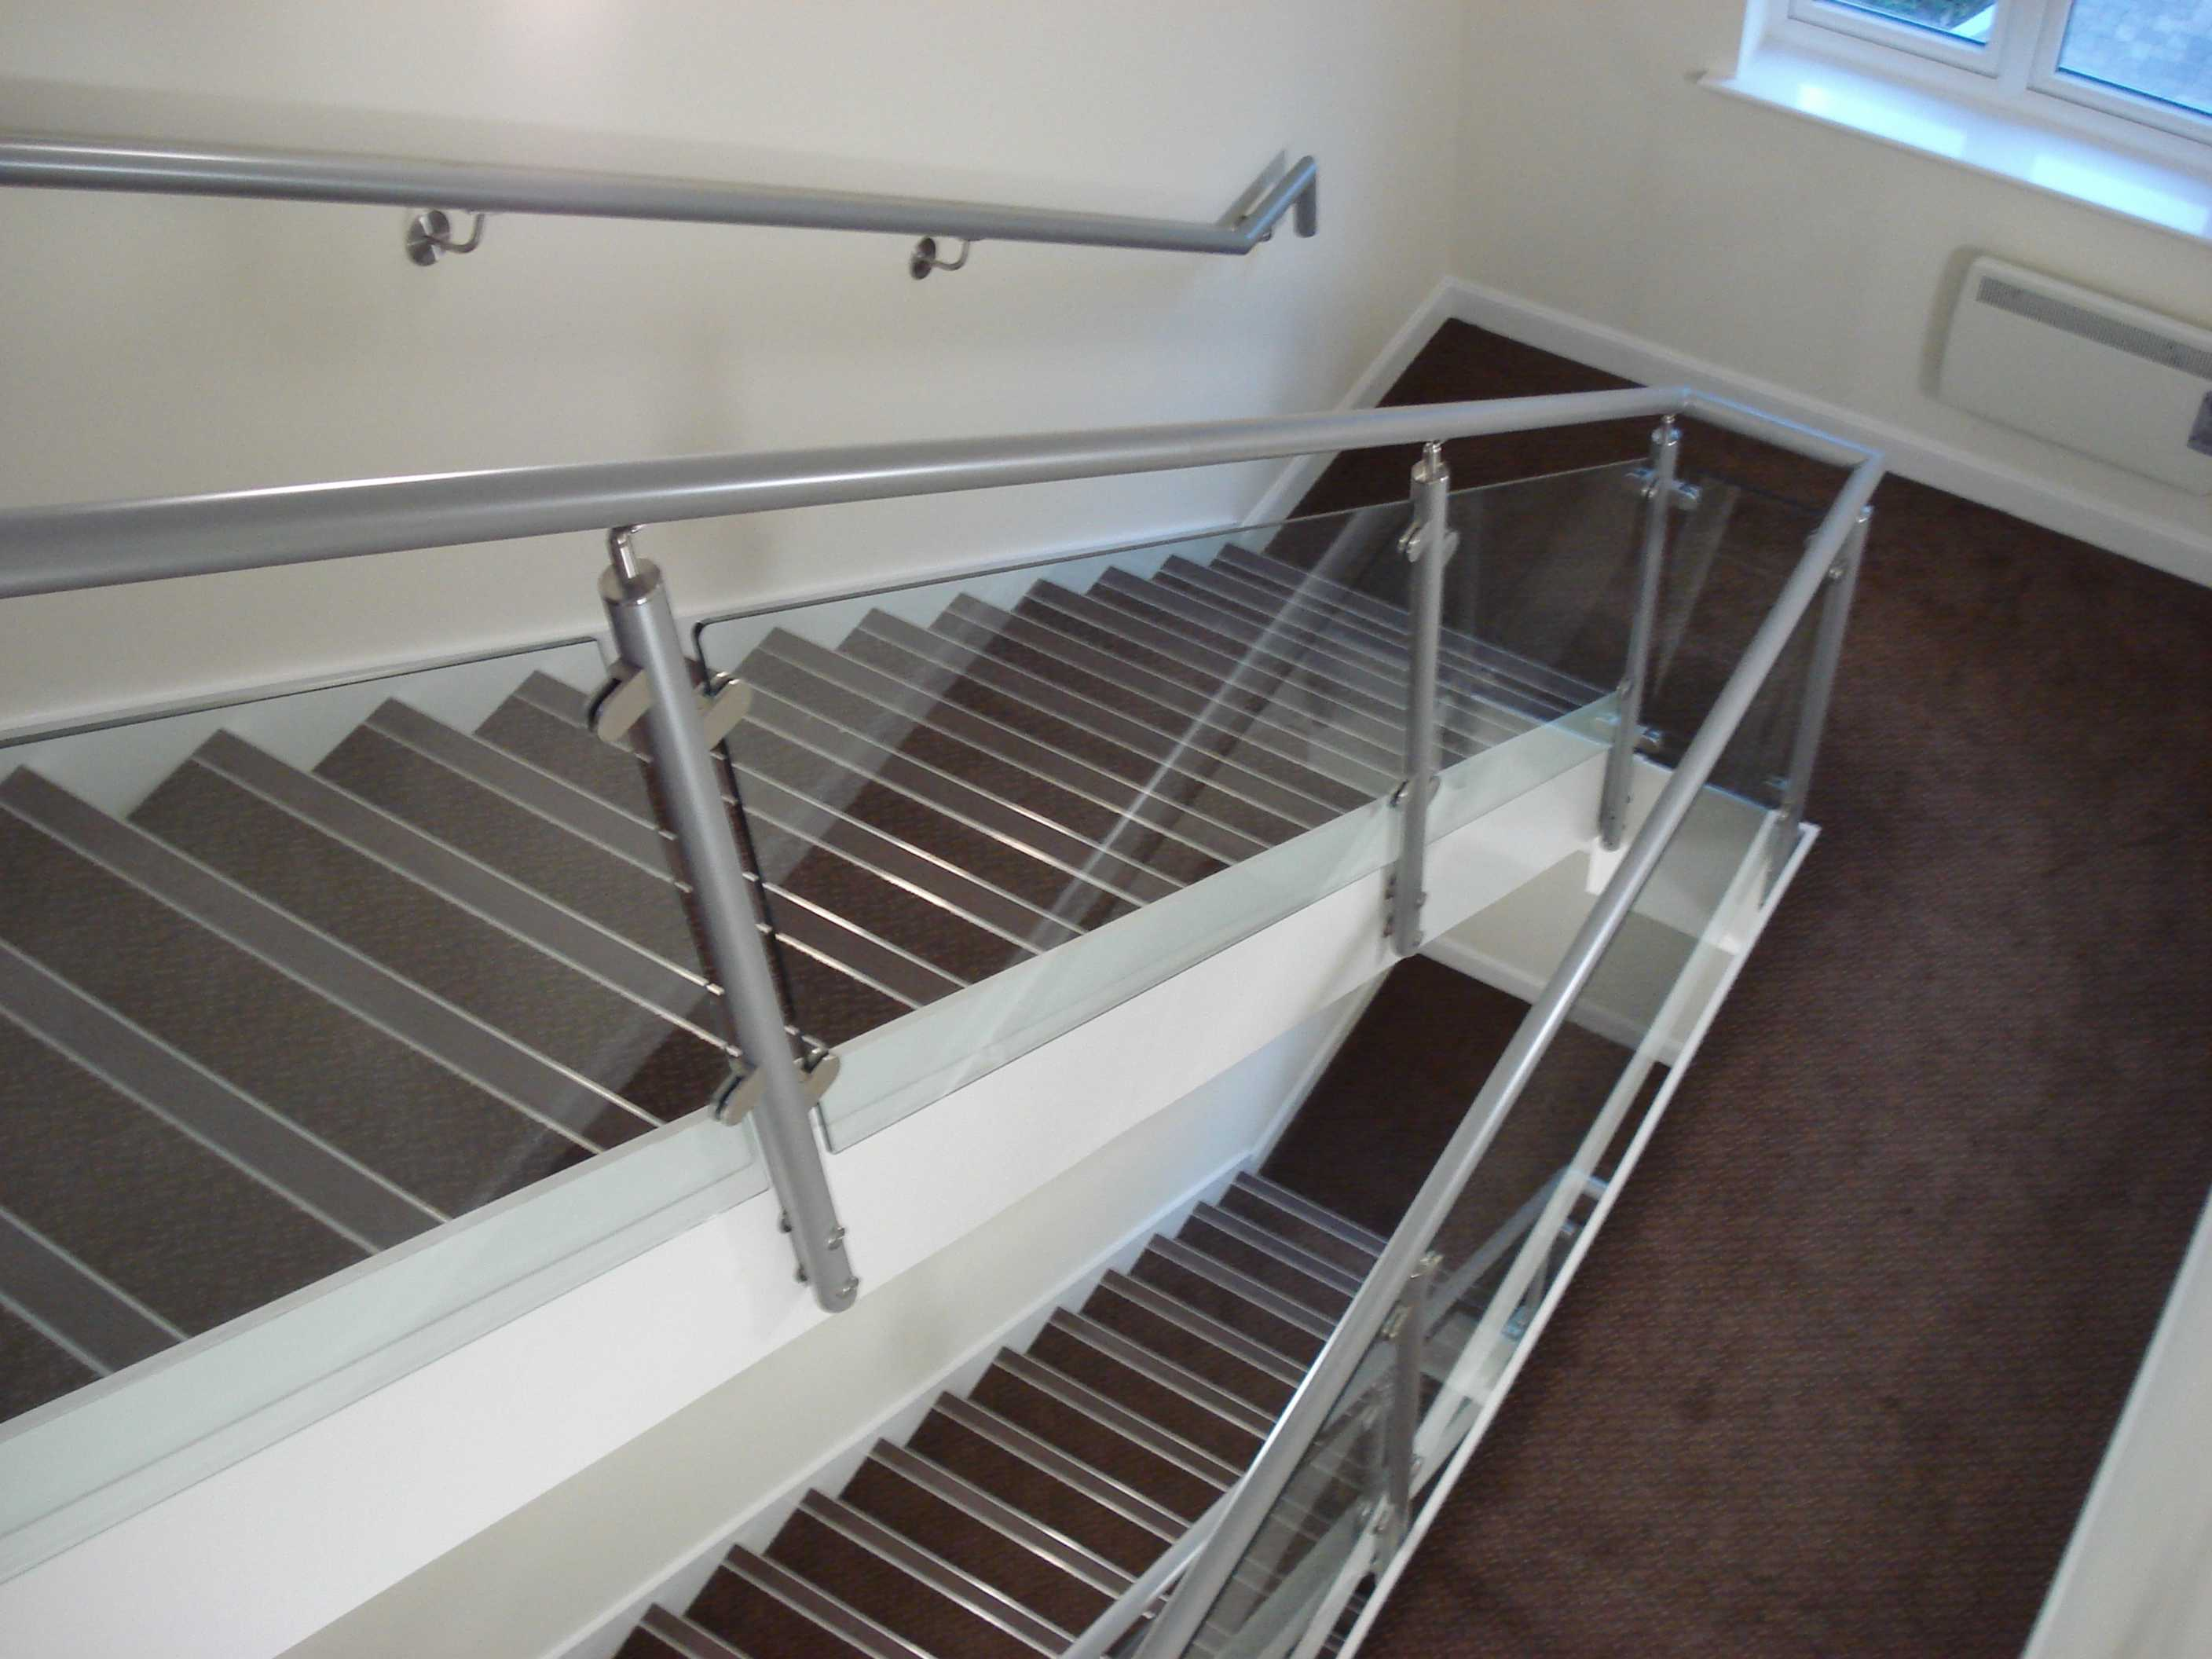 Staircase with aluminium handrail